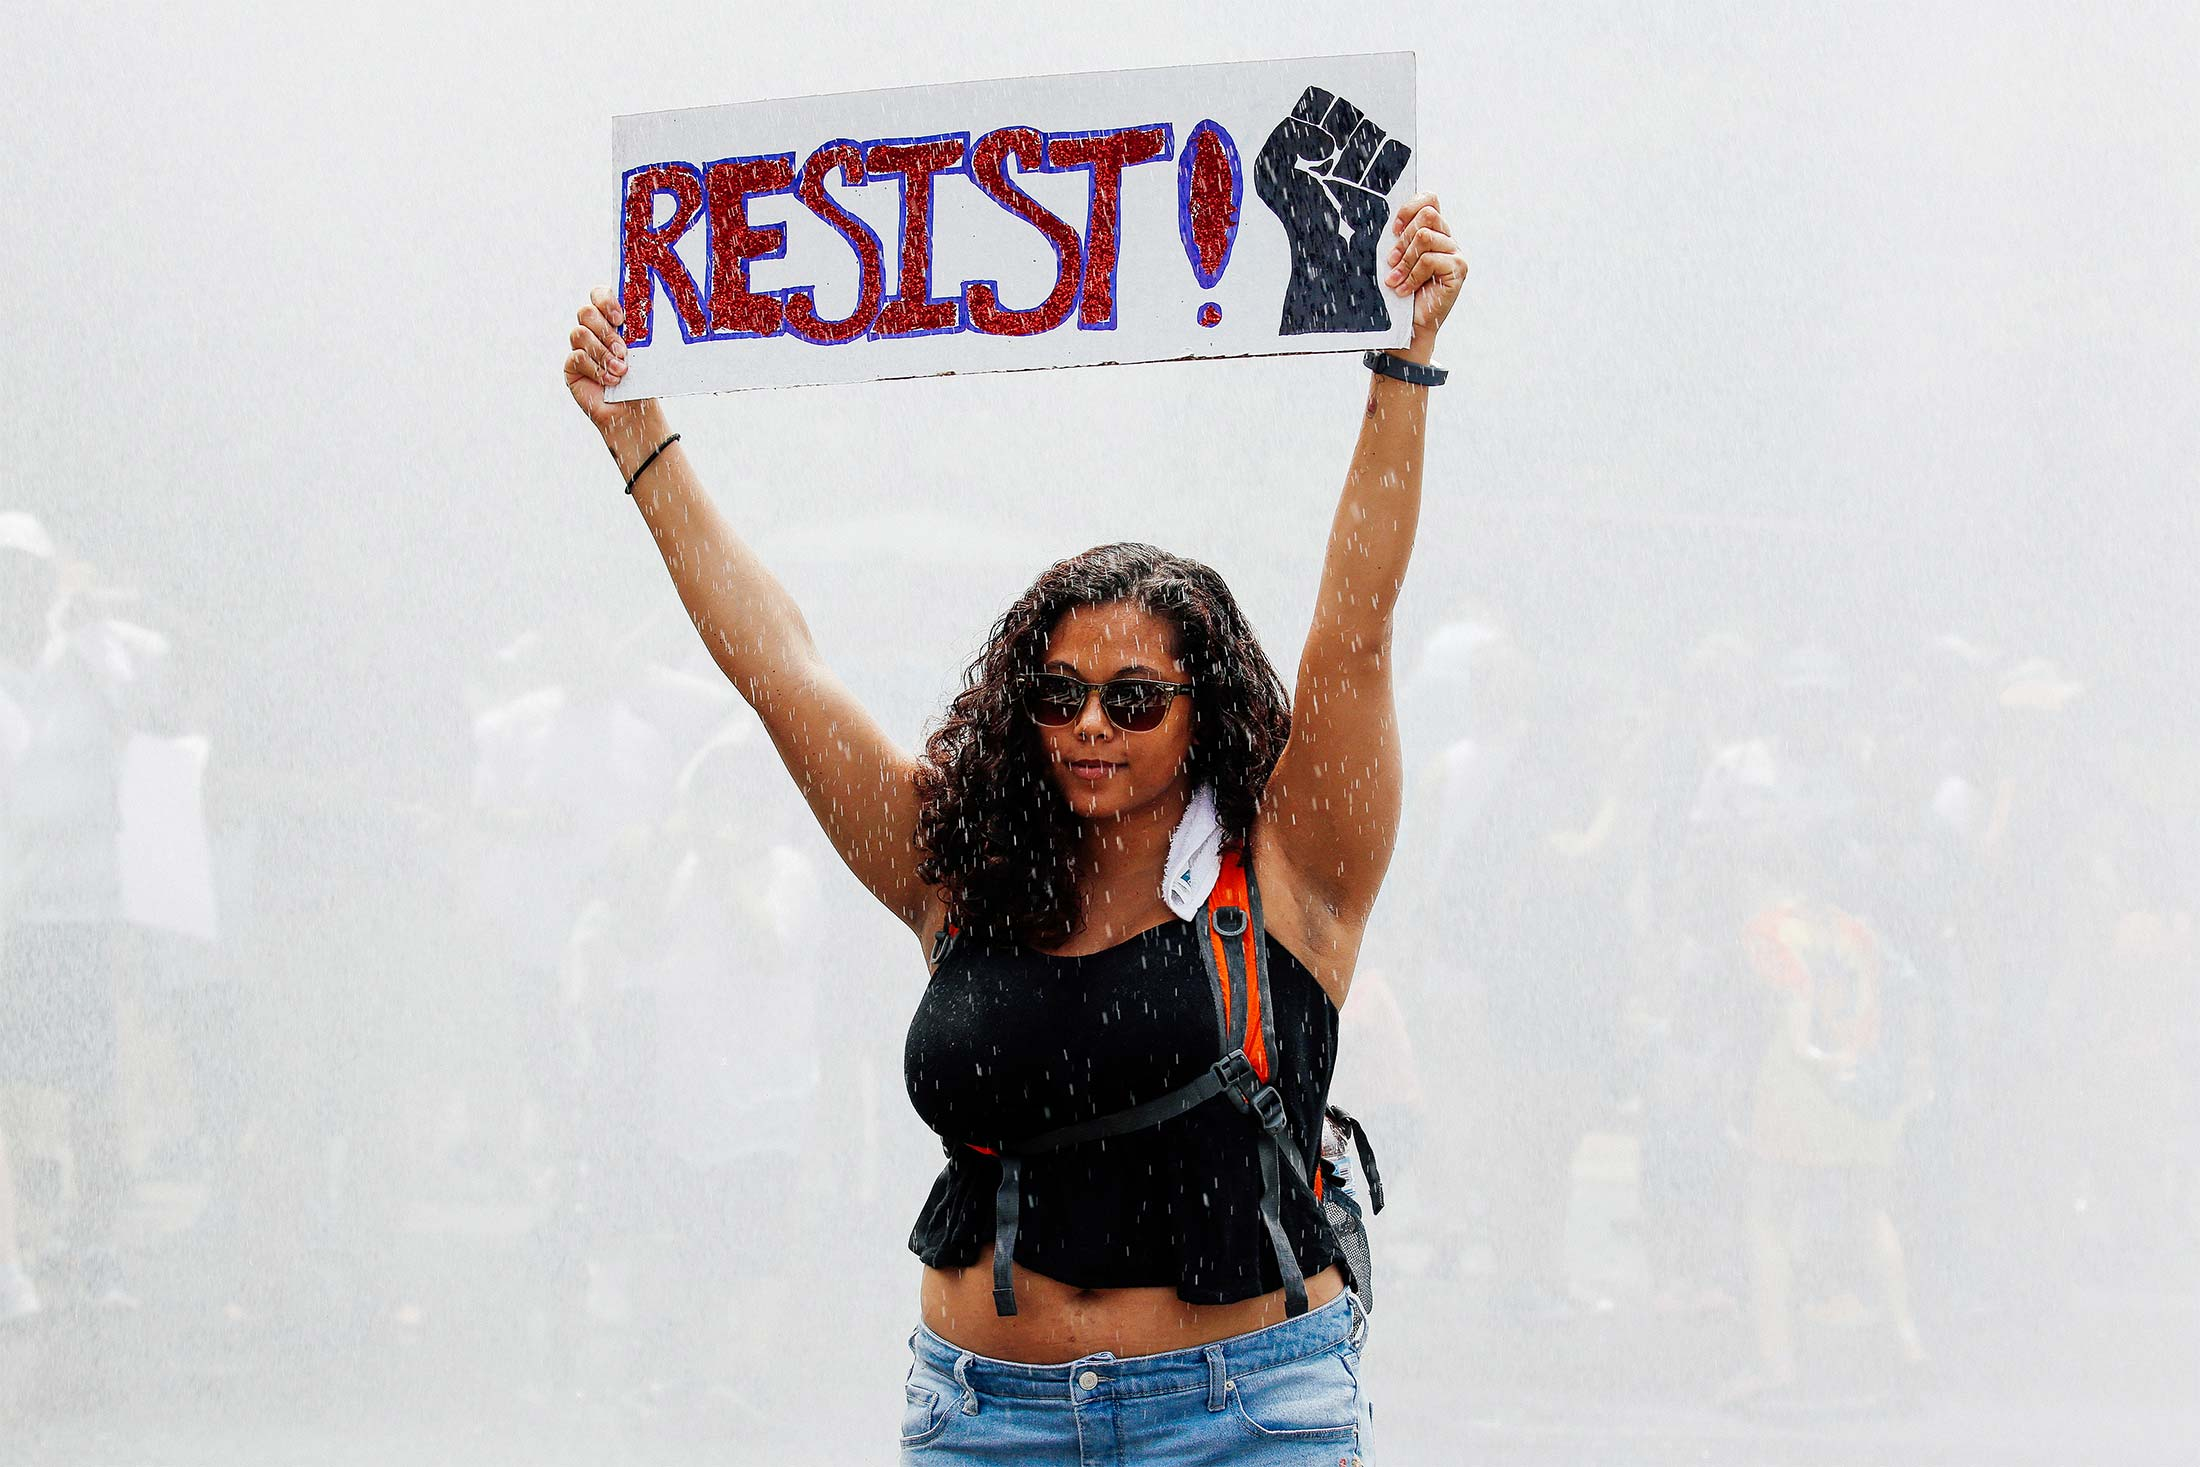 """A young woman defiantly holds up a """"RESIST!"""" sign as she stands in a spray of water from a fire truck during a protest."""